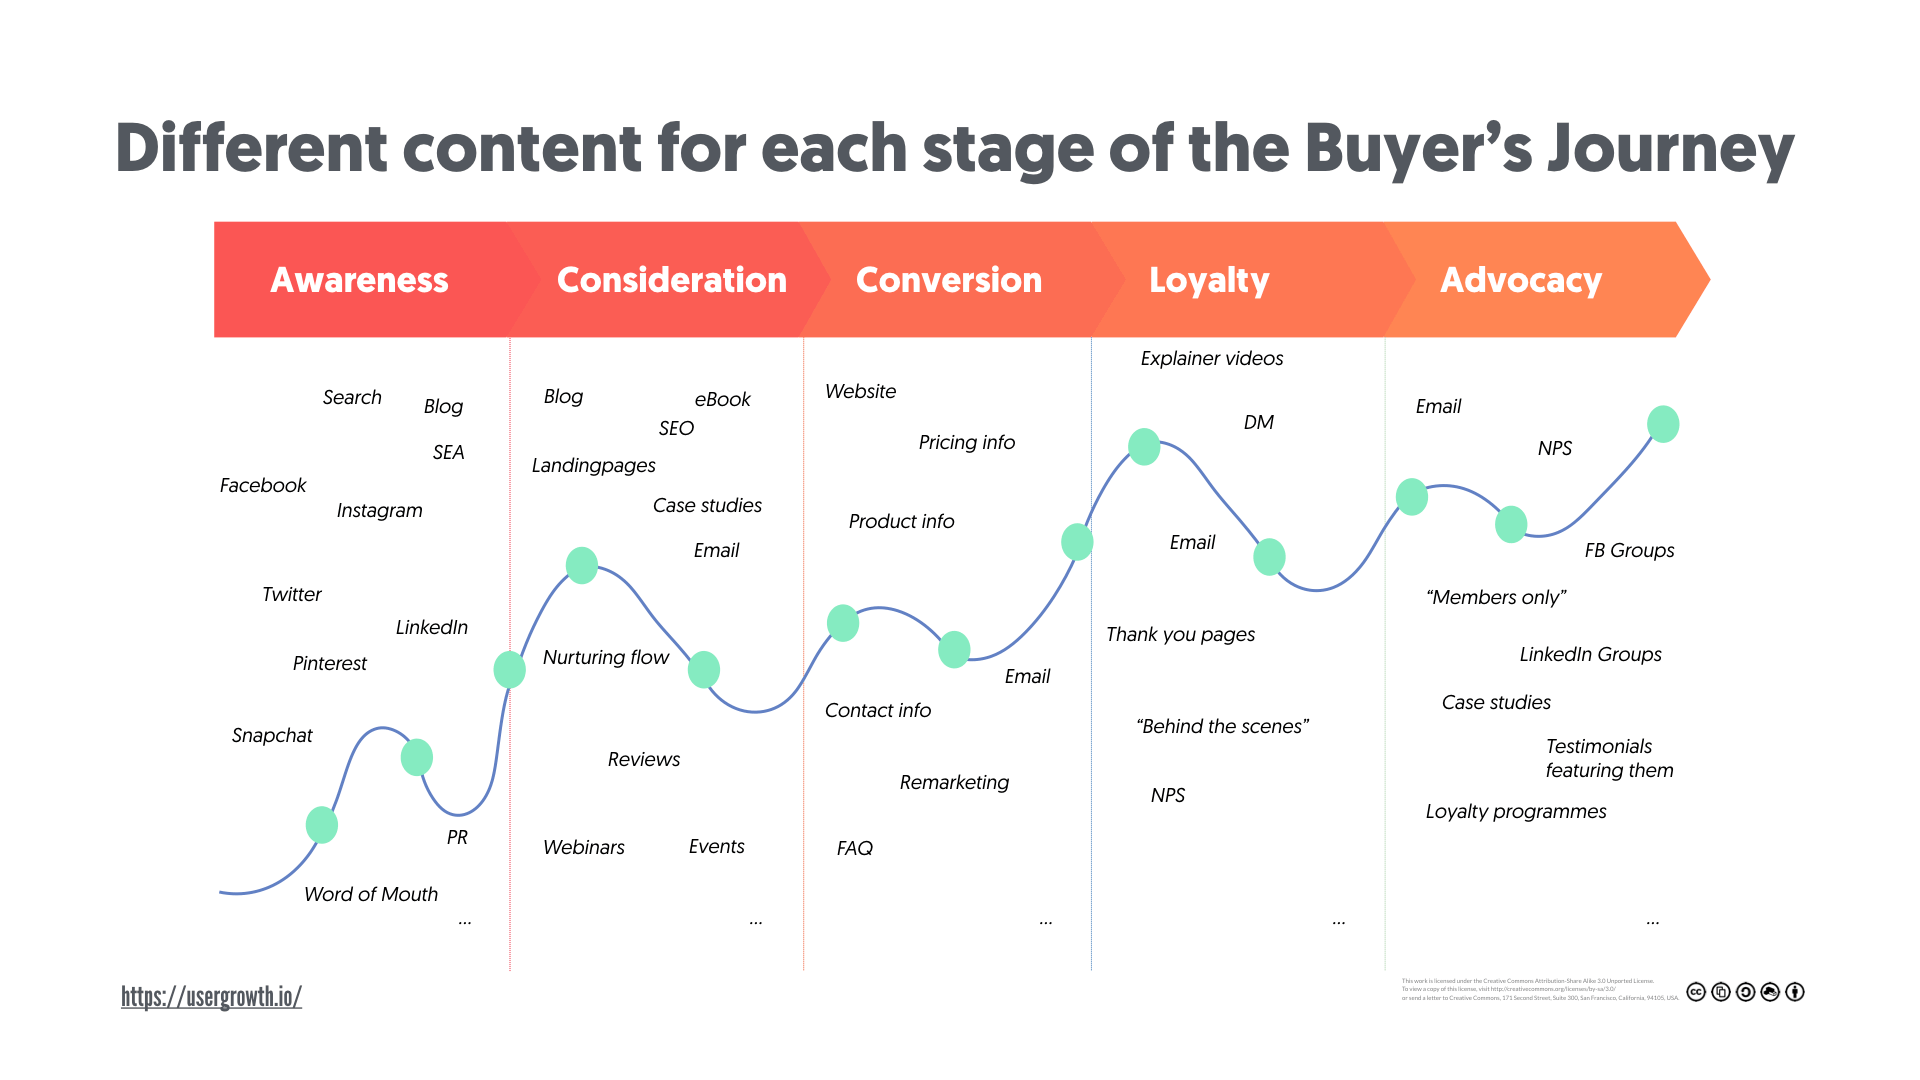 Different content for each stage of the buyer's journey